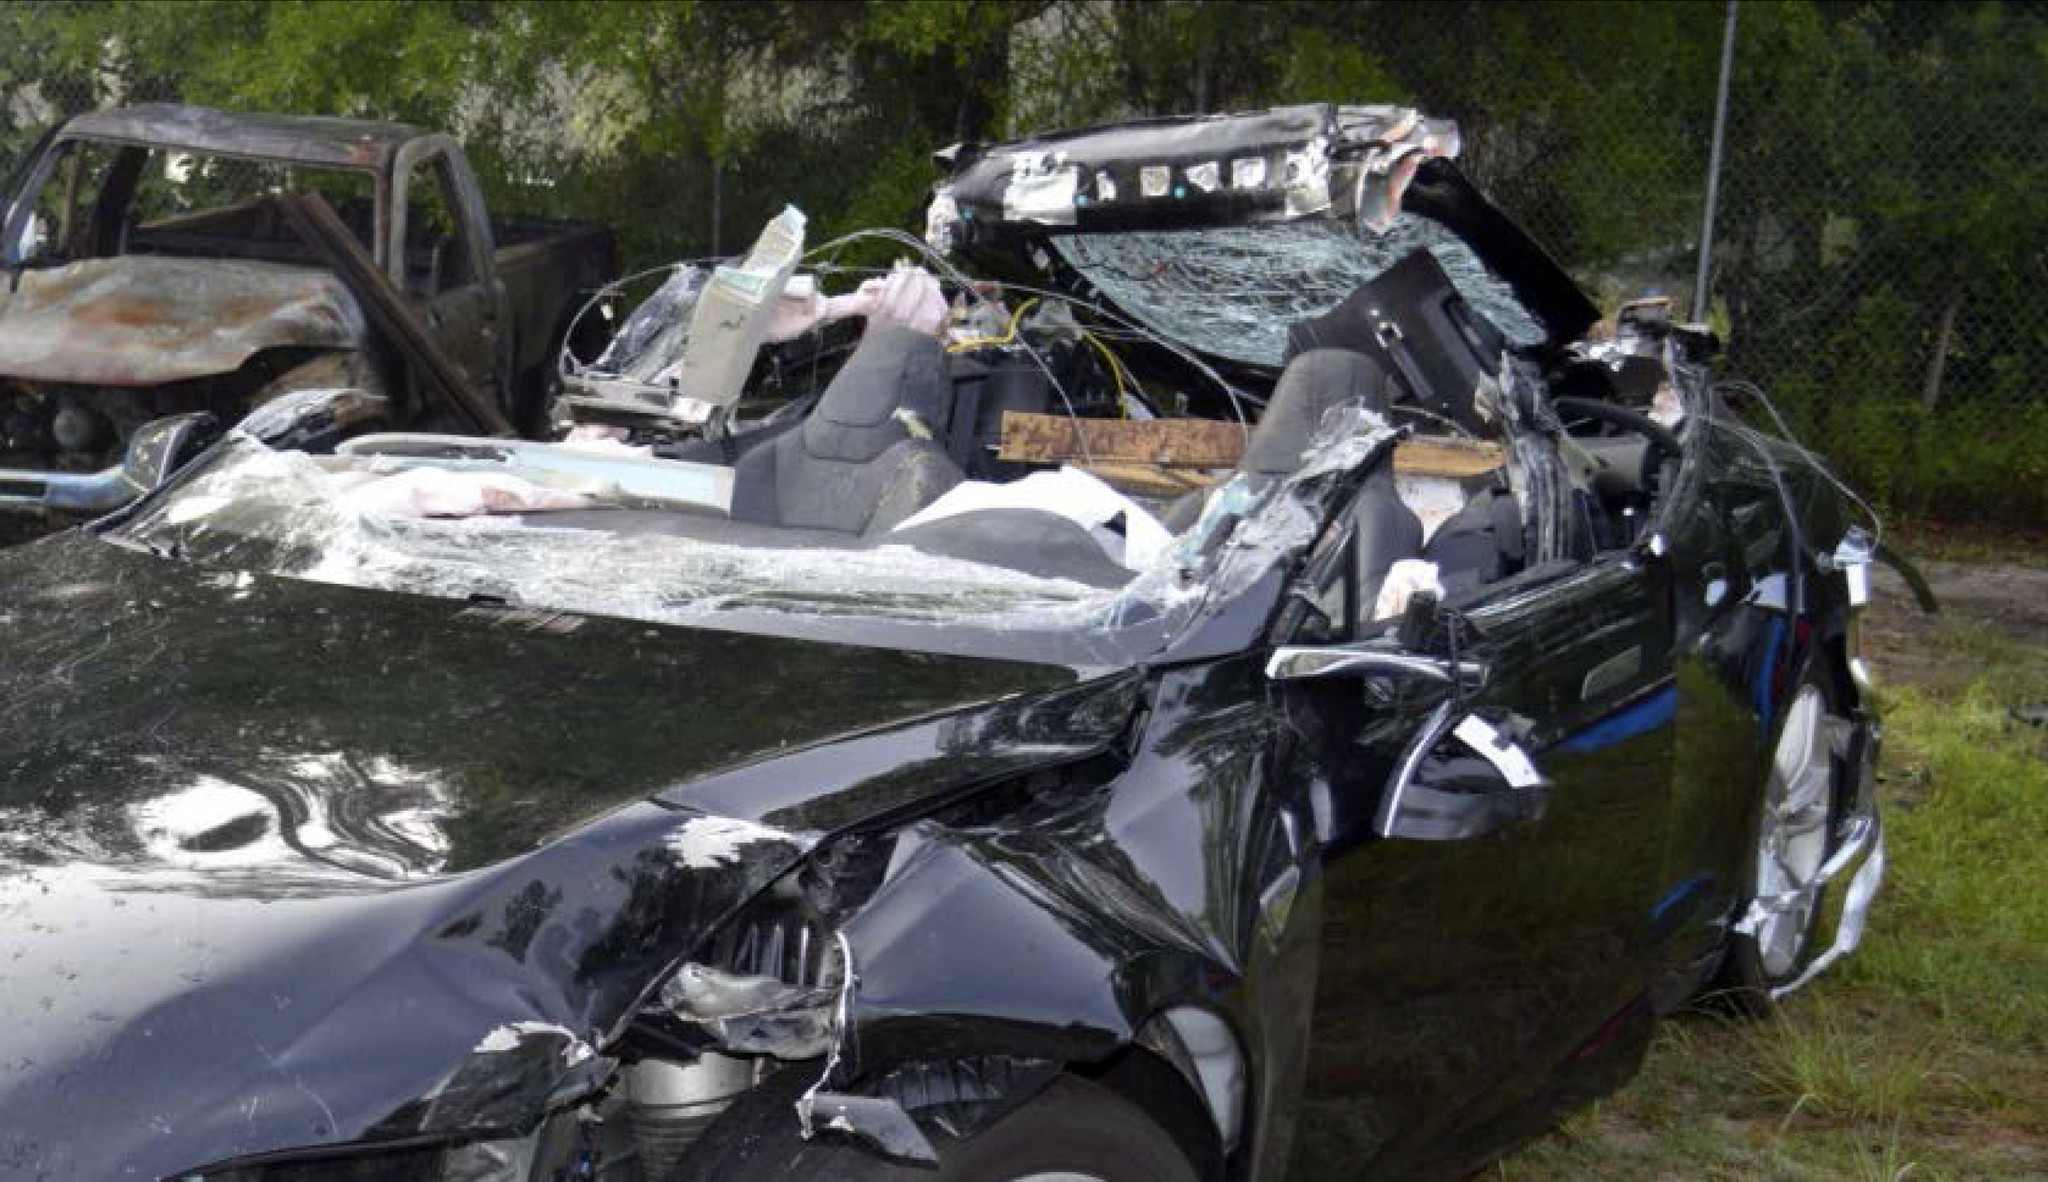 tesla car mangled in fatal crash was on autopilot and speeding ntsb says la times